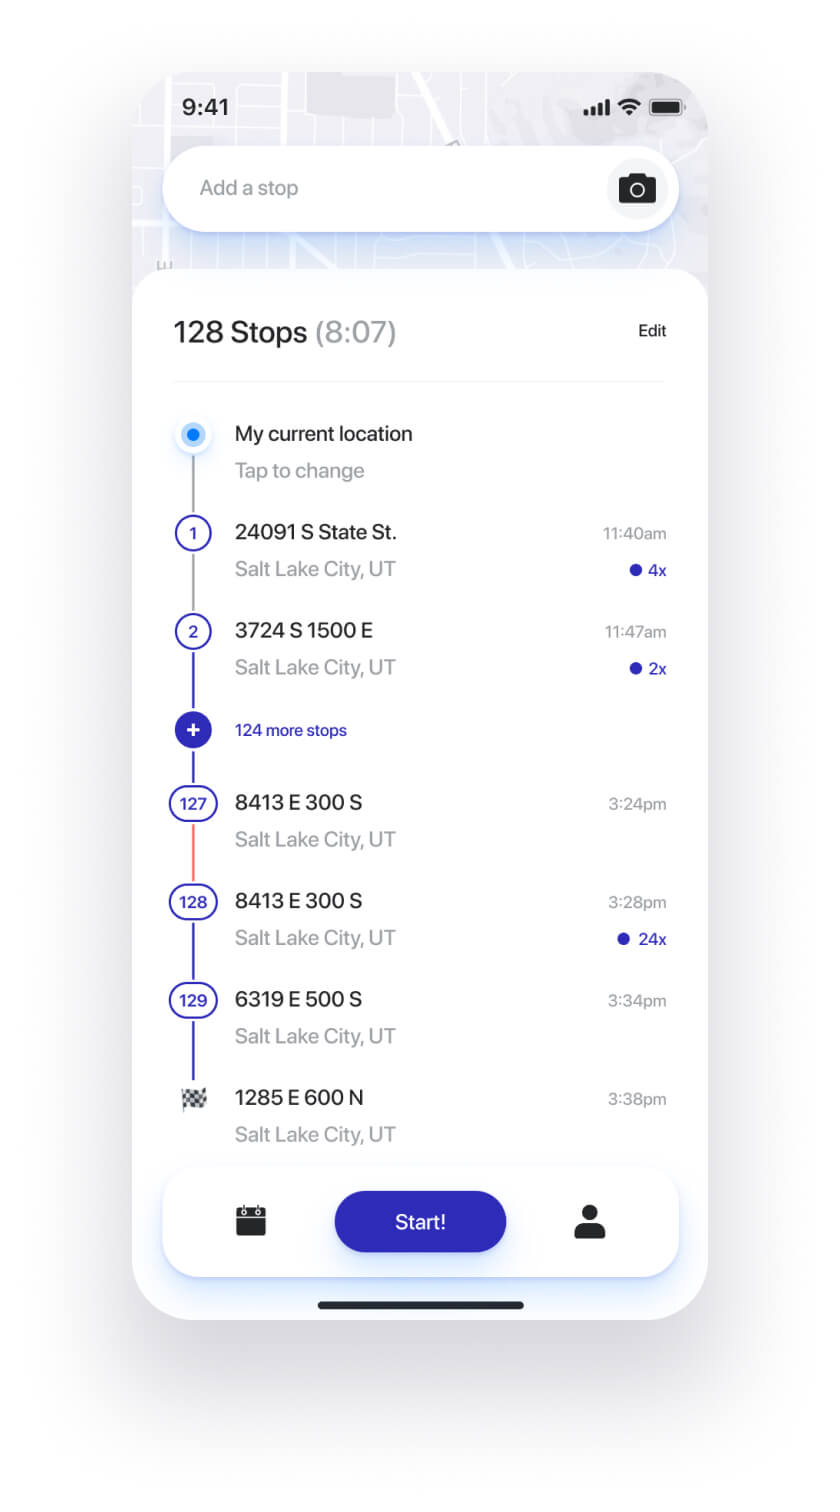 Straightaway route planner app - optimized order of stops view.